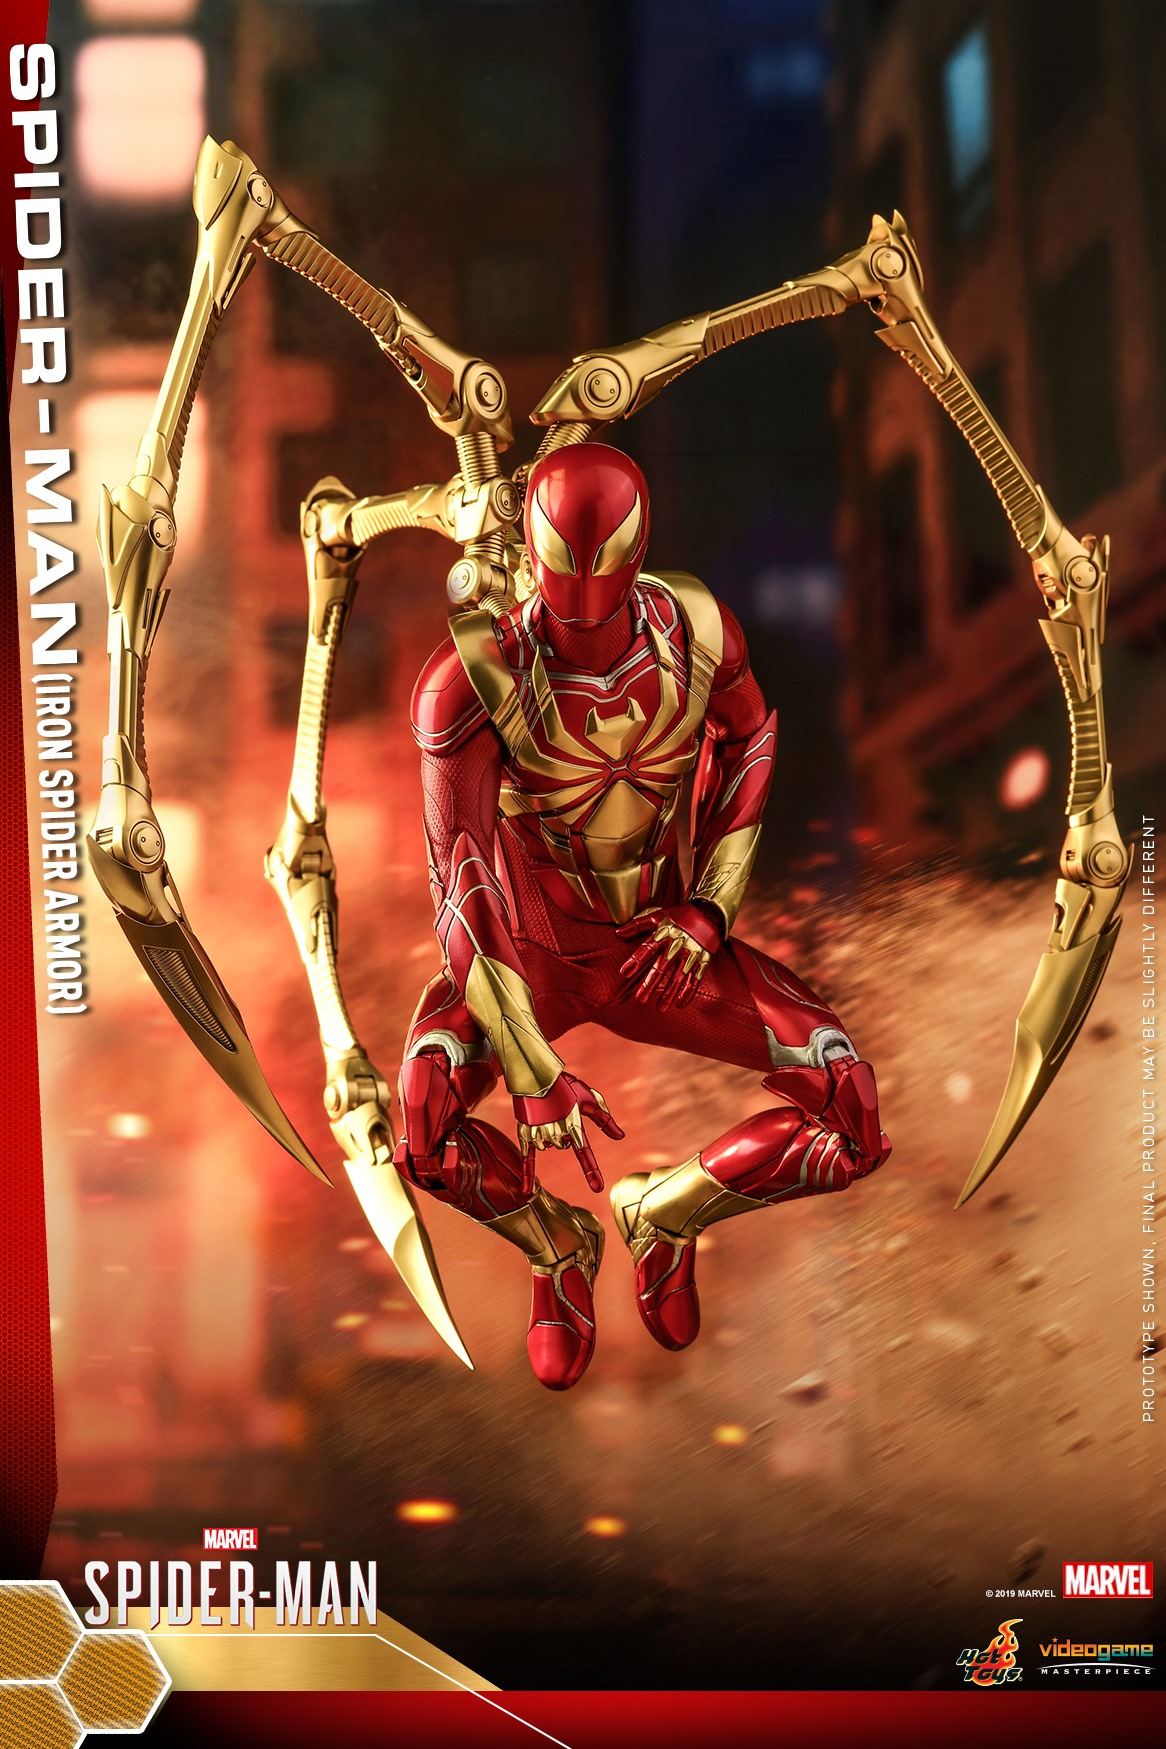 Pre-Order Hot Toys Marvel Spider-Man Iron Spider Armor Figure